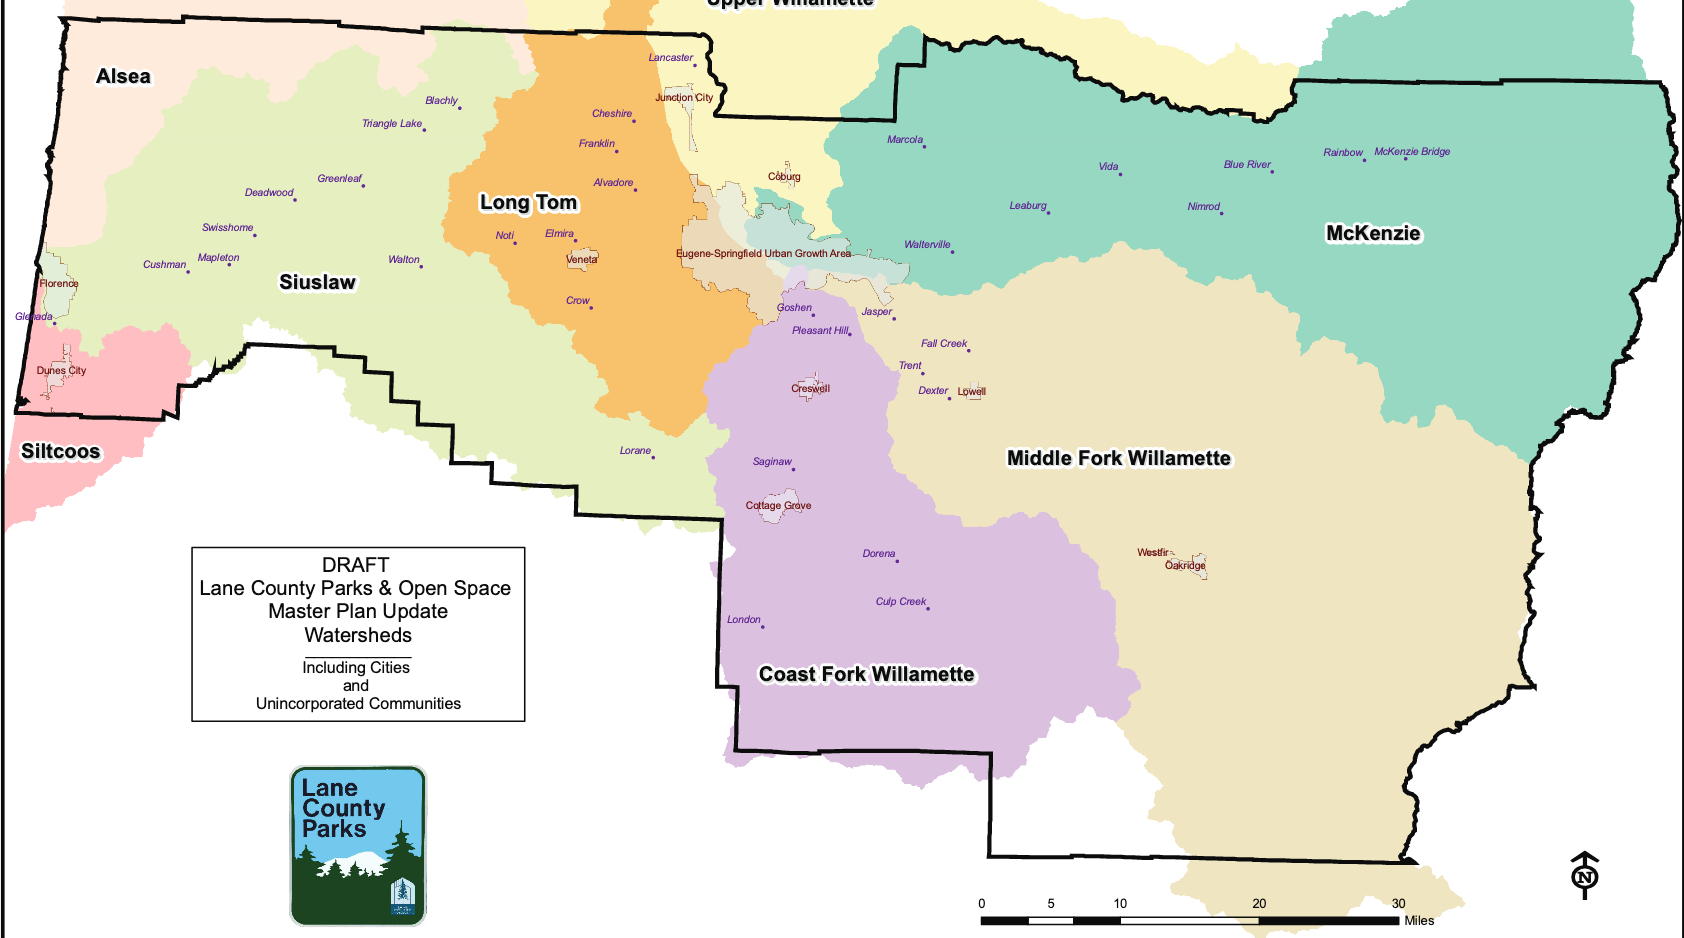 LaneCountyWatershedMap.png